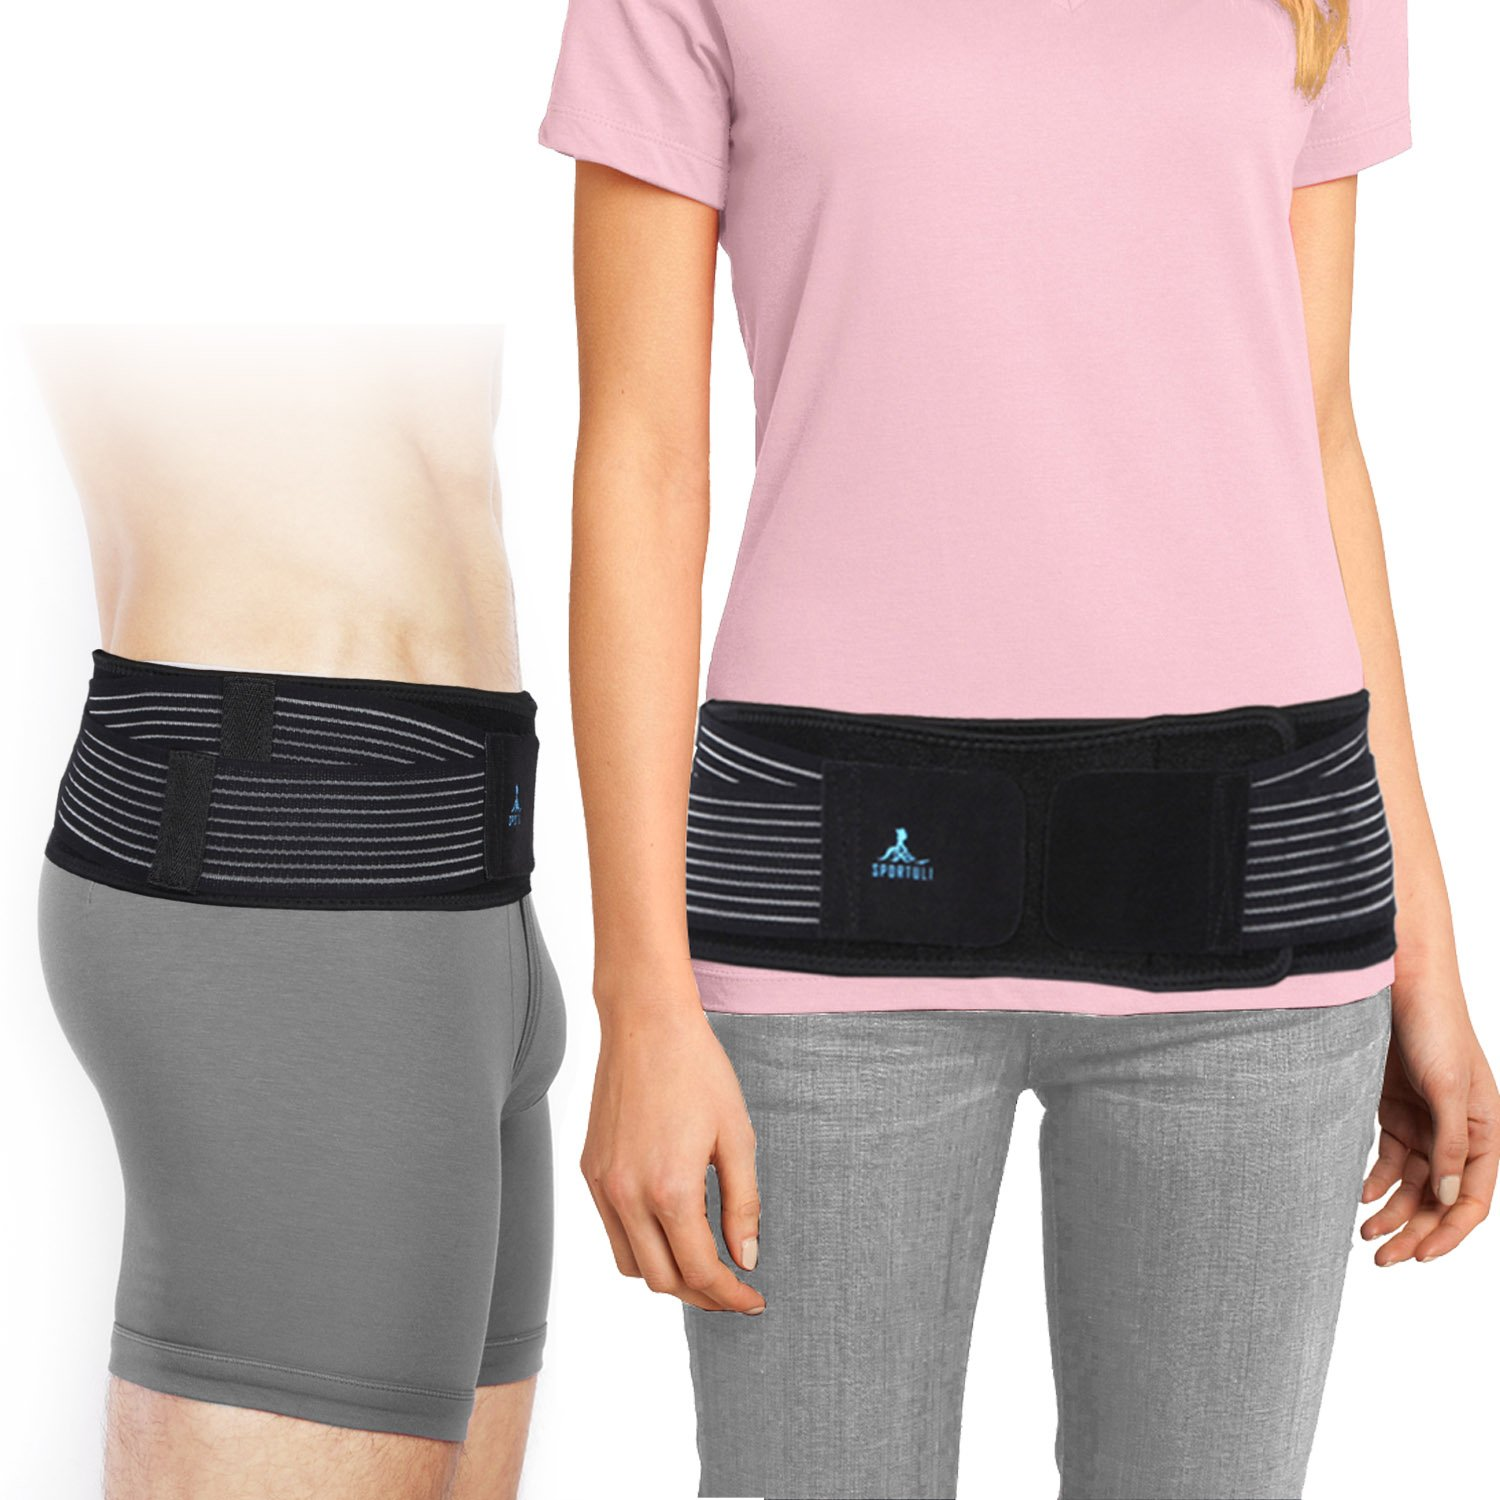 SI Belt for Women and Men- Sacroiliac Belt for SI Joint Pain Relief, Adjustable SI Joint Belt for Low Back Support Hip and Sciatica Pain, Diamond-Shaped Pressure Provides Compression and Stability